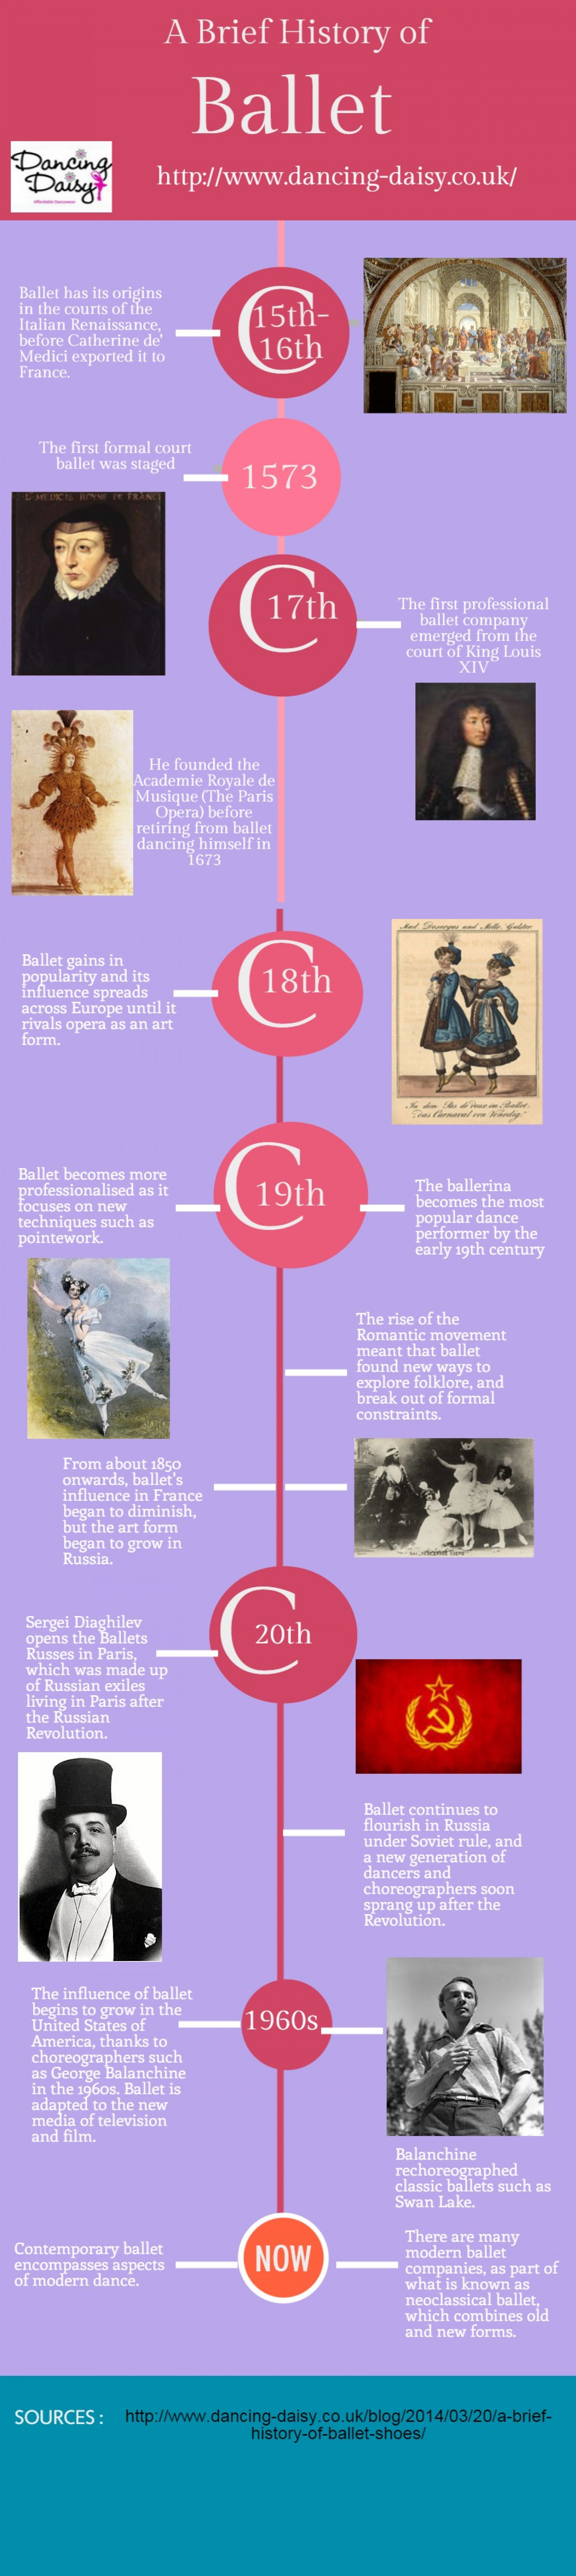 A Brief History of Ballet  Infographic